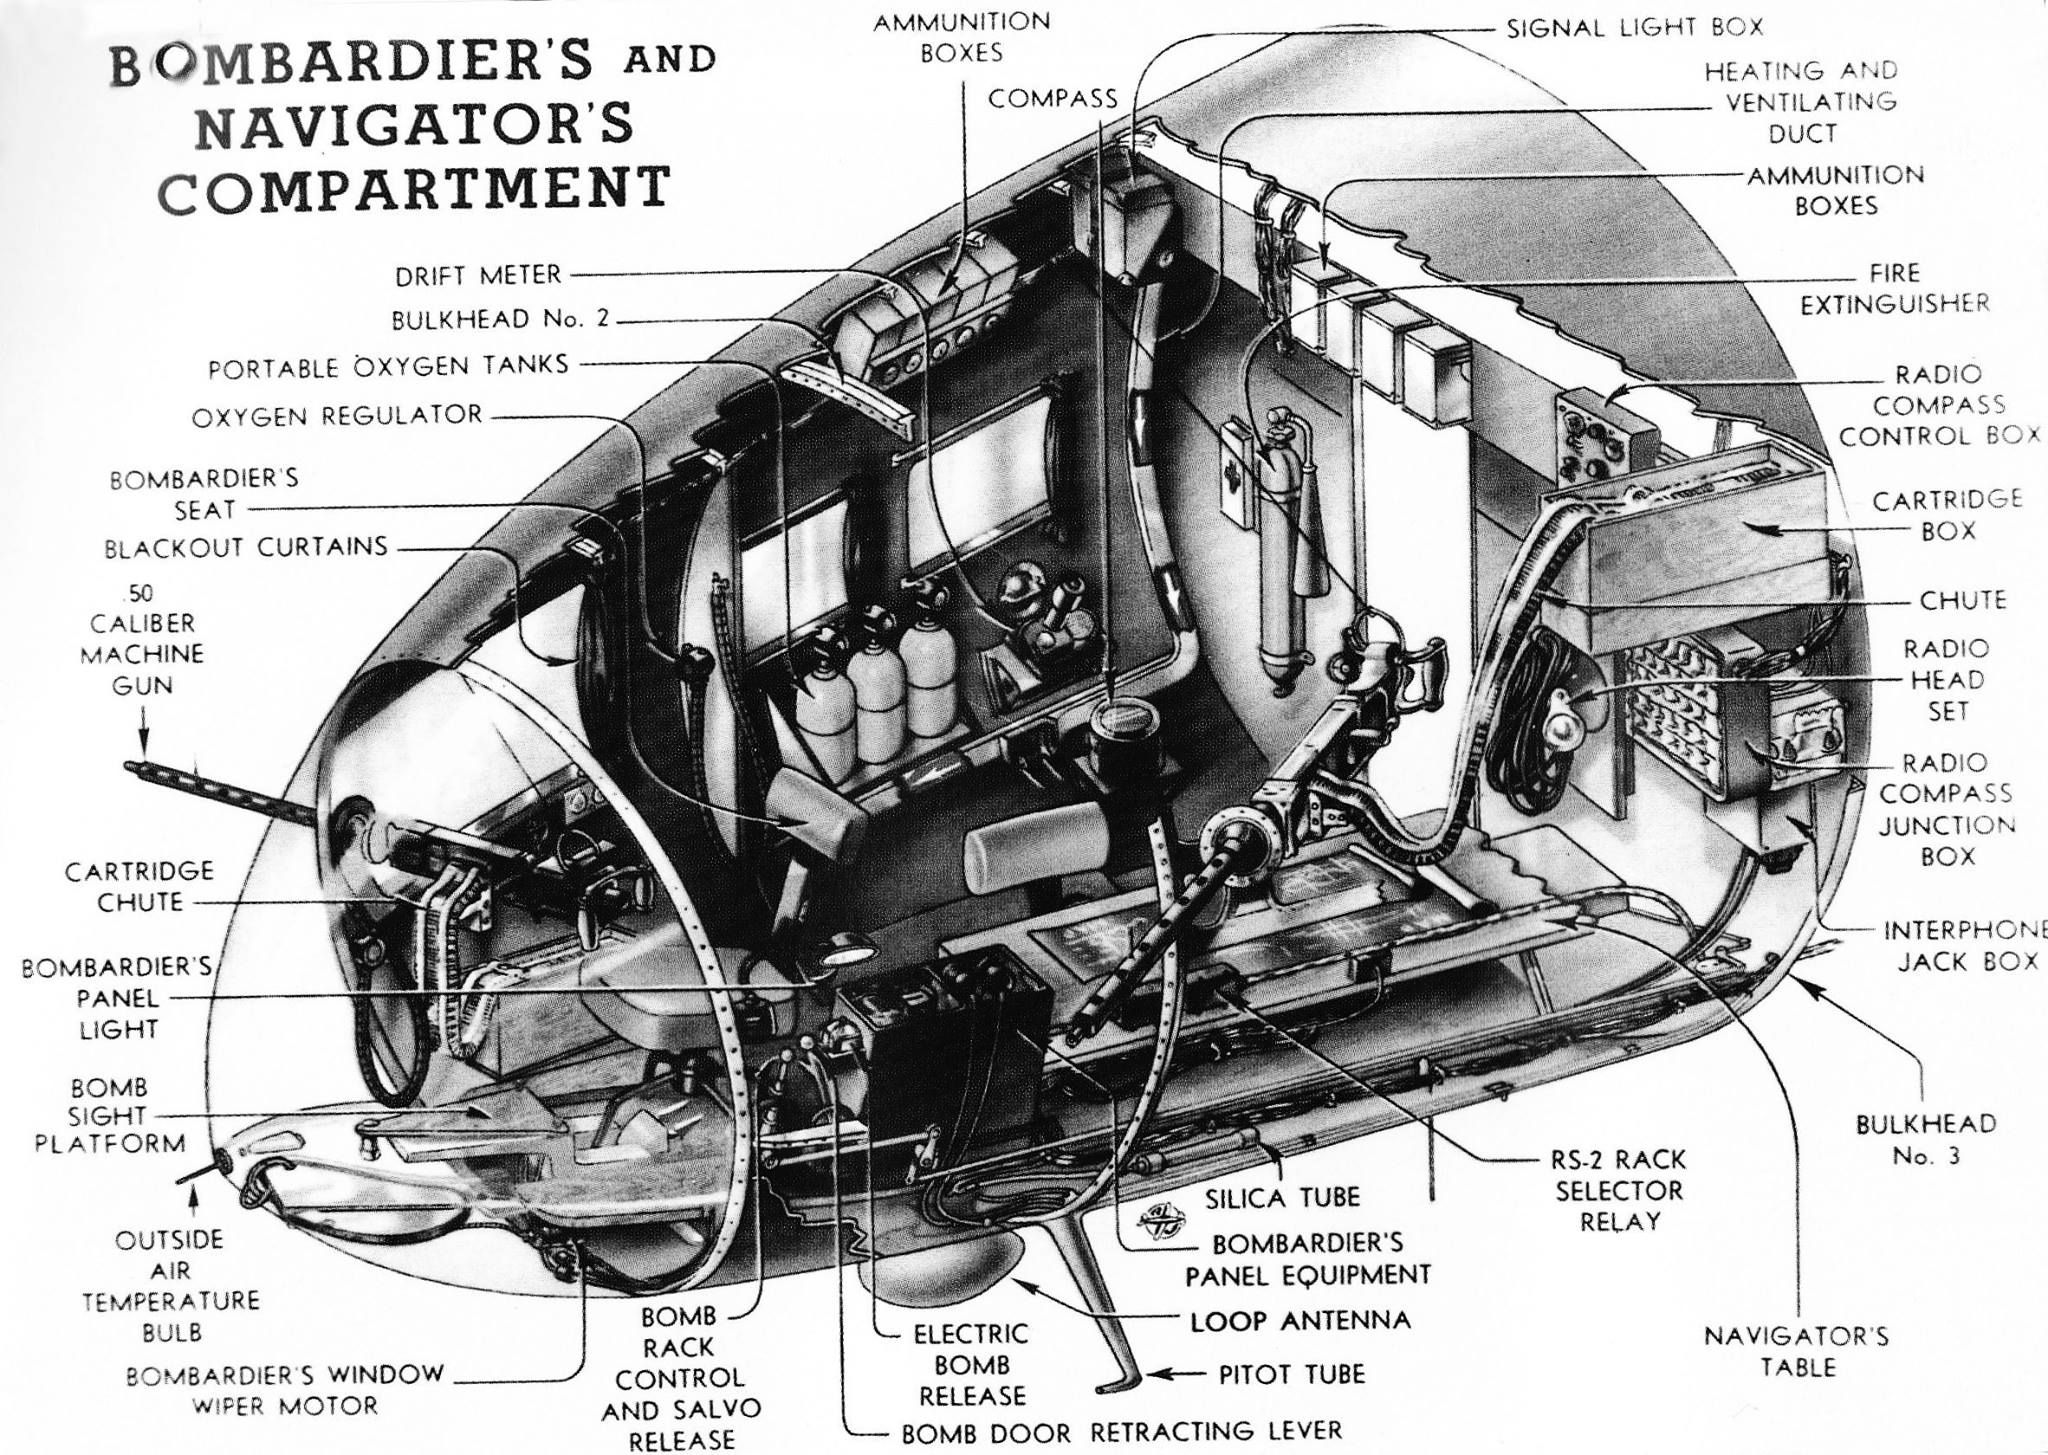 b 17 engine diagram wiring diagram schema b 17 engine diagram [ 2048 x 1455 Pixel ]